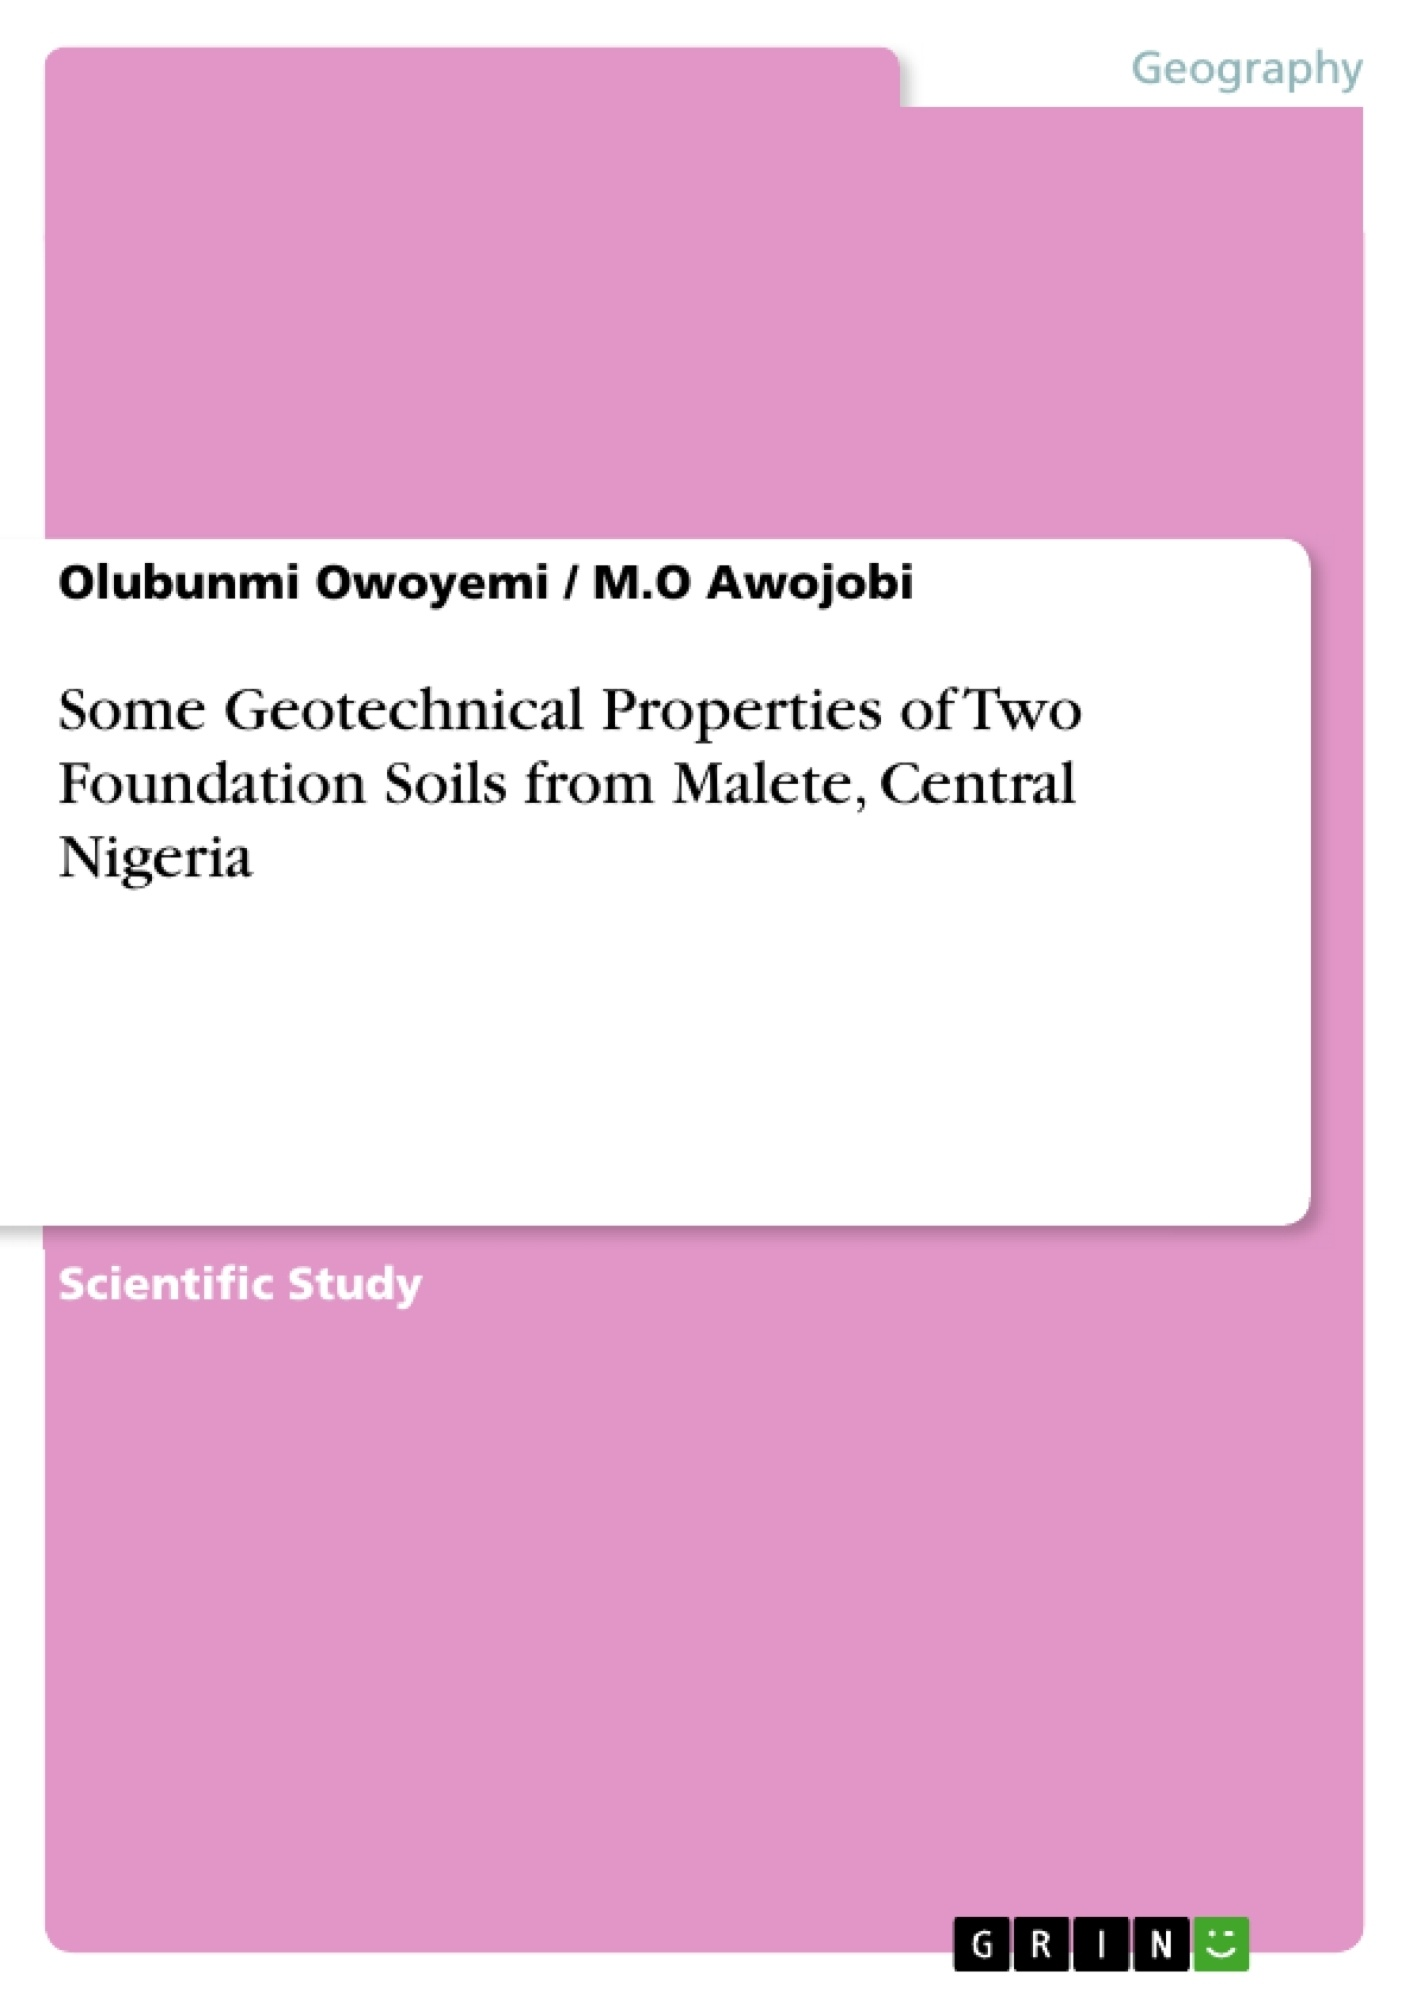 Title: Some Geotechnical Properties of Two Foundation Soils from Malete, Central Nigeria